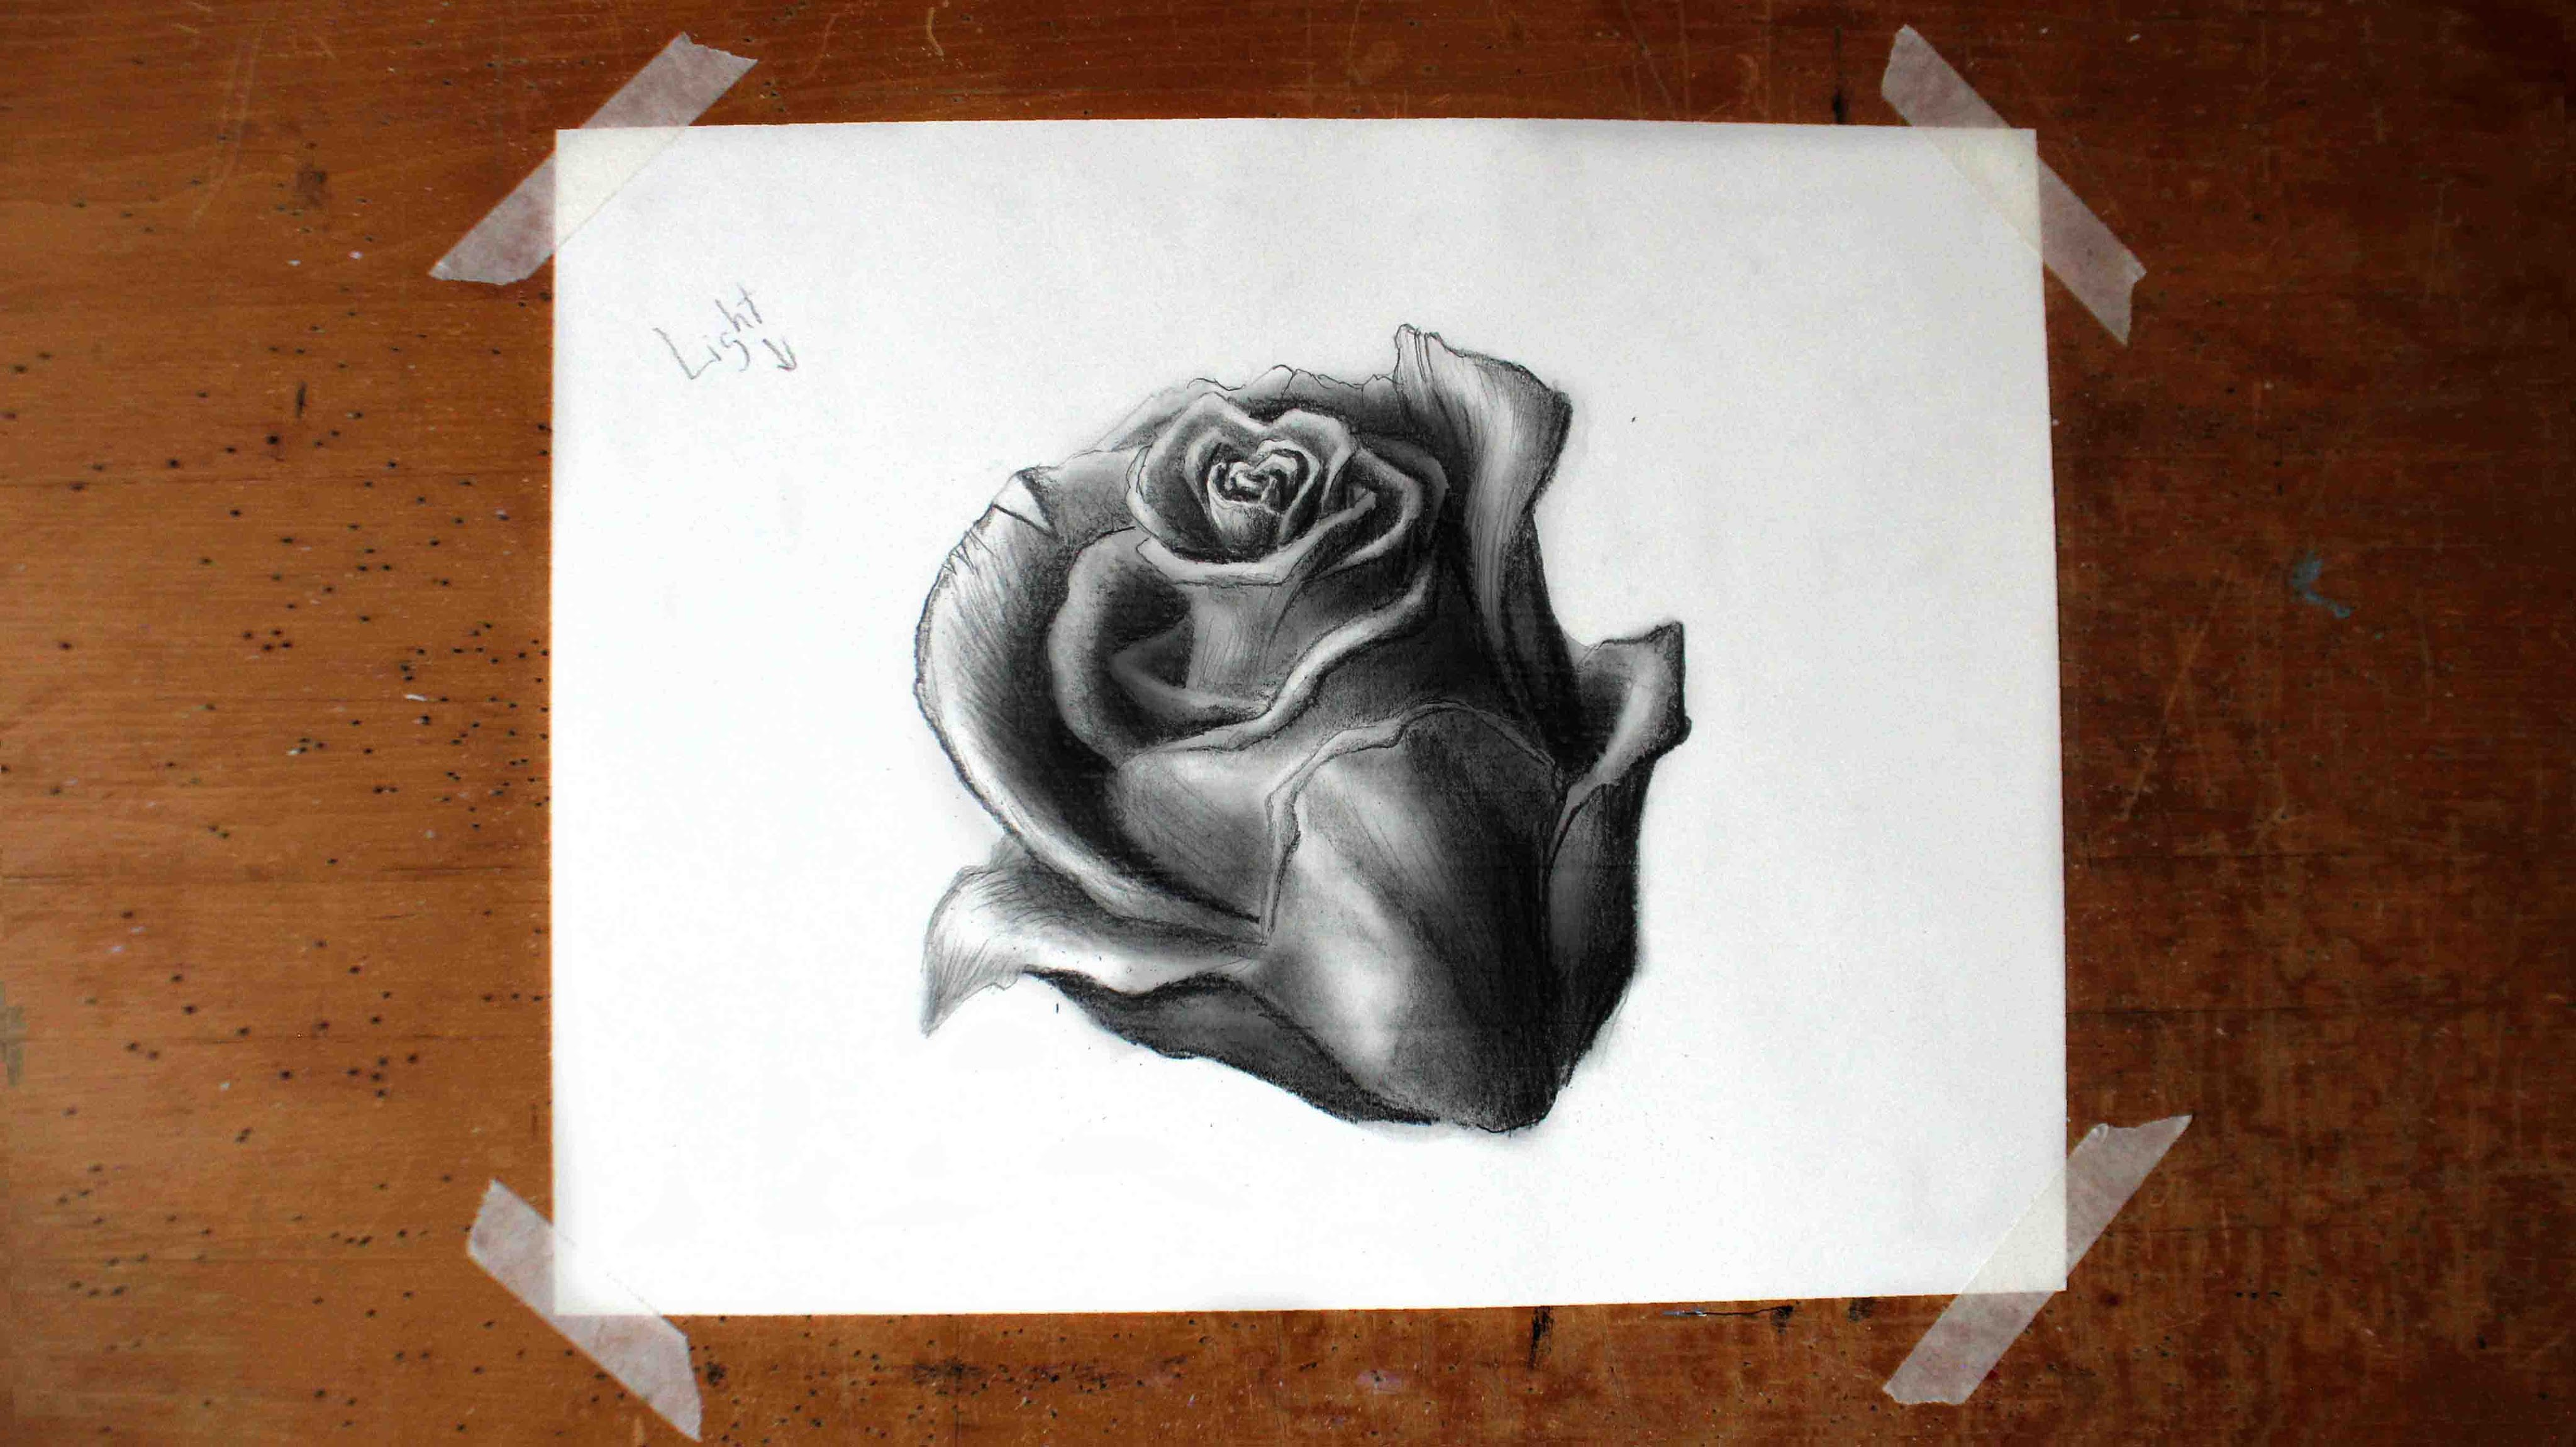 Drawn rose realistic For Tutorial YouTube to a